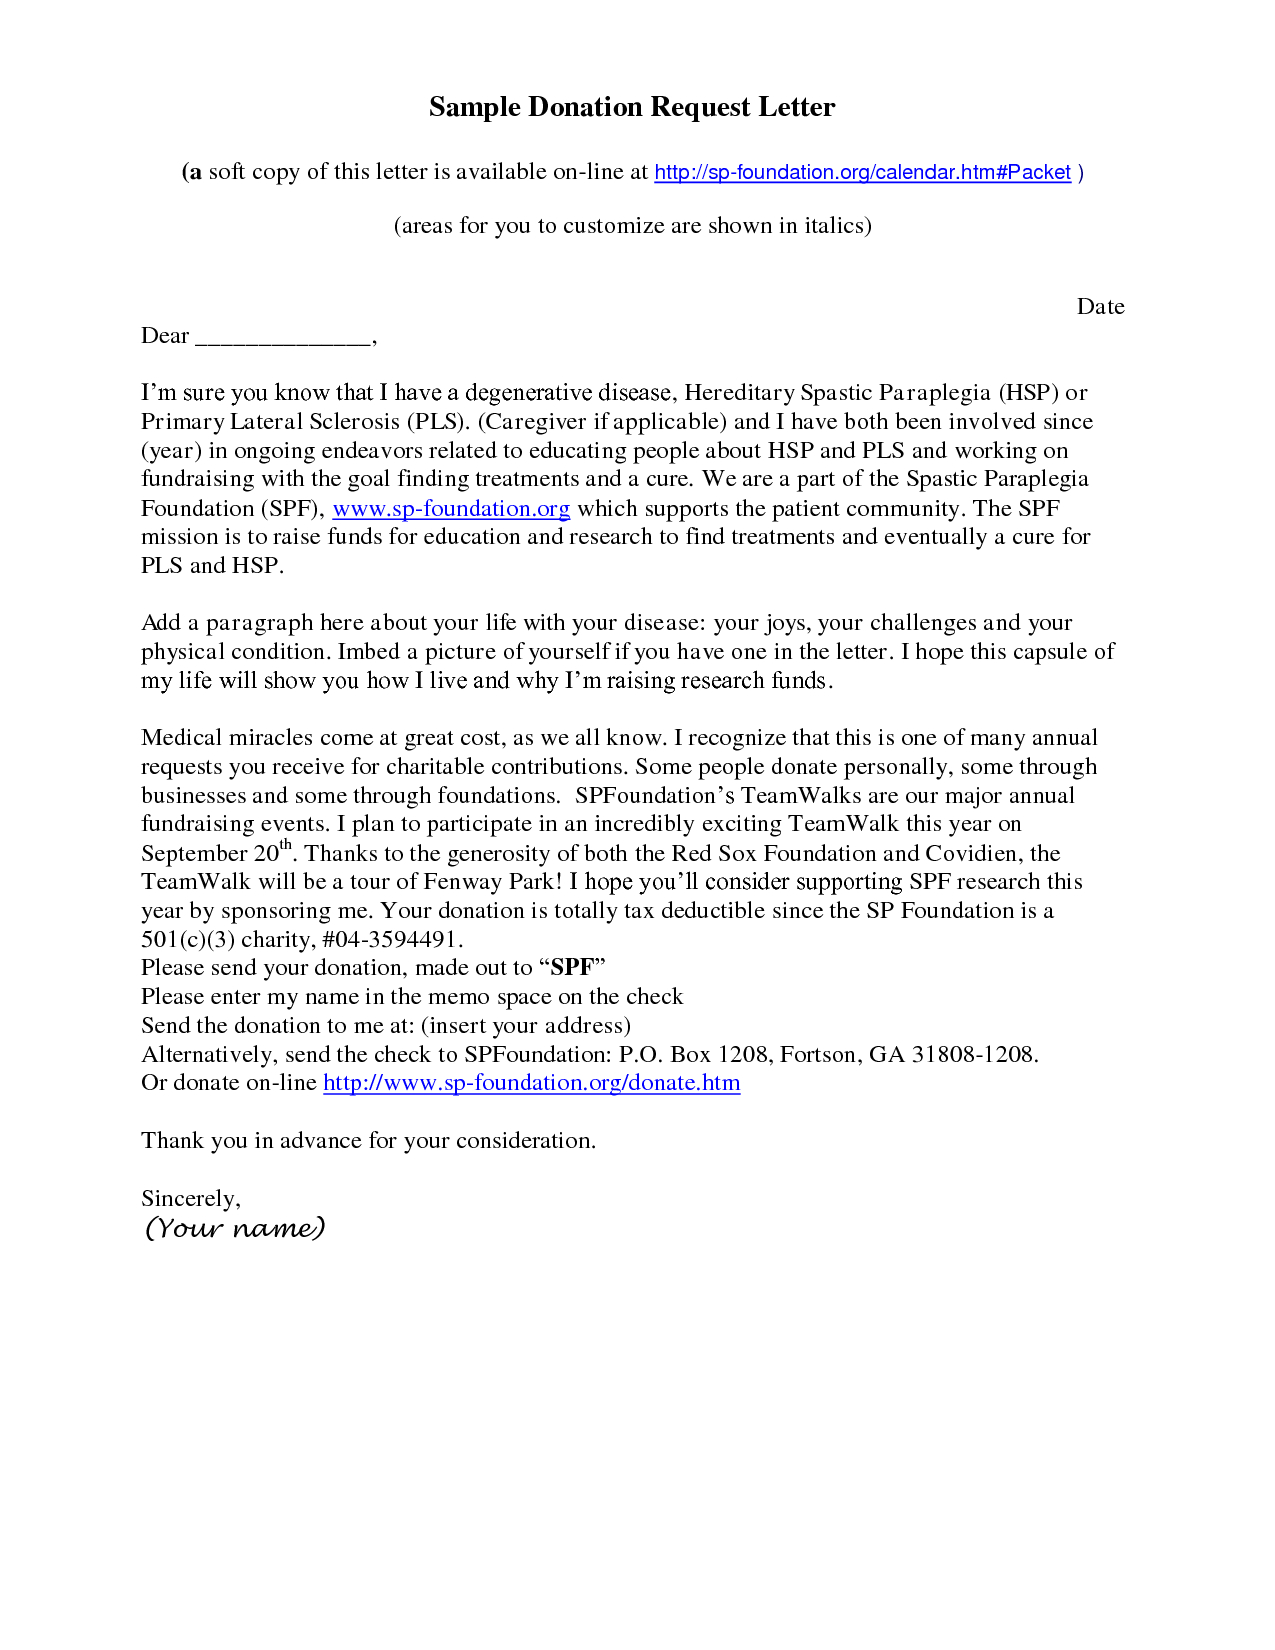 Fundraising Request for Donation Letter Template - How to Write A solicitation Letter for Donations Choice Image